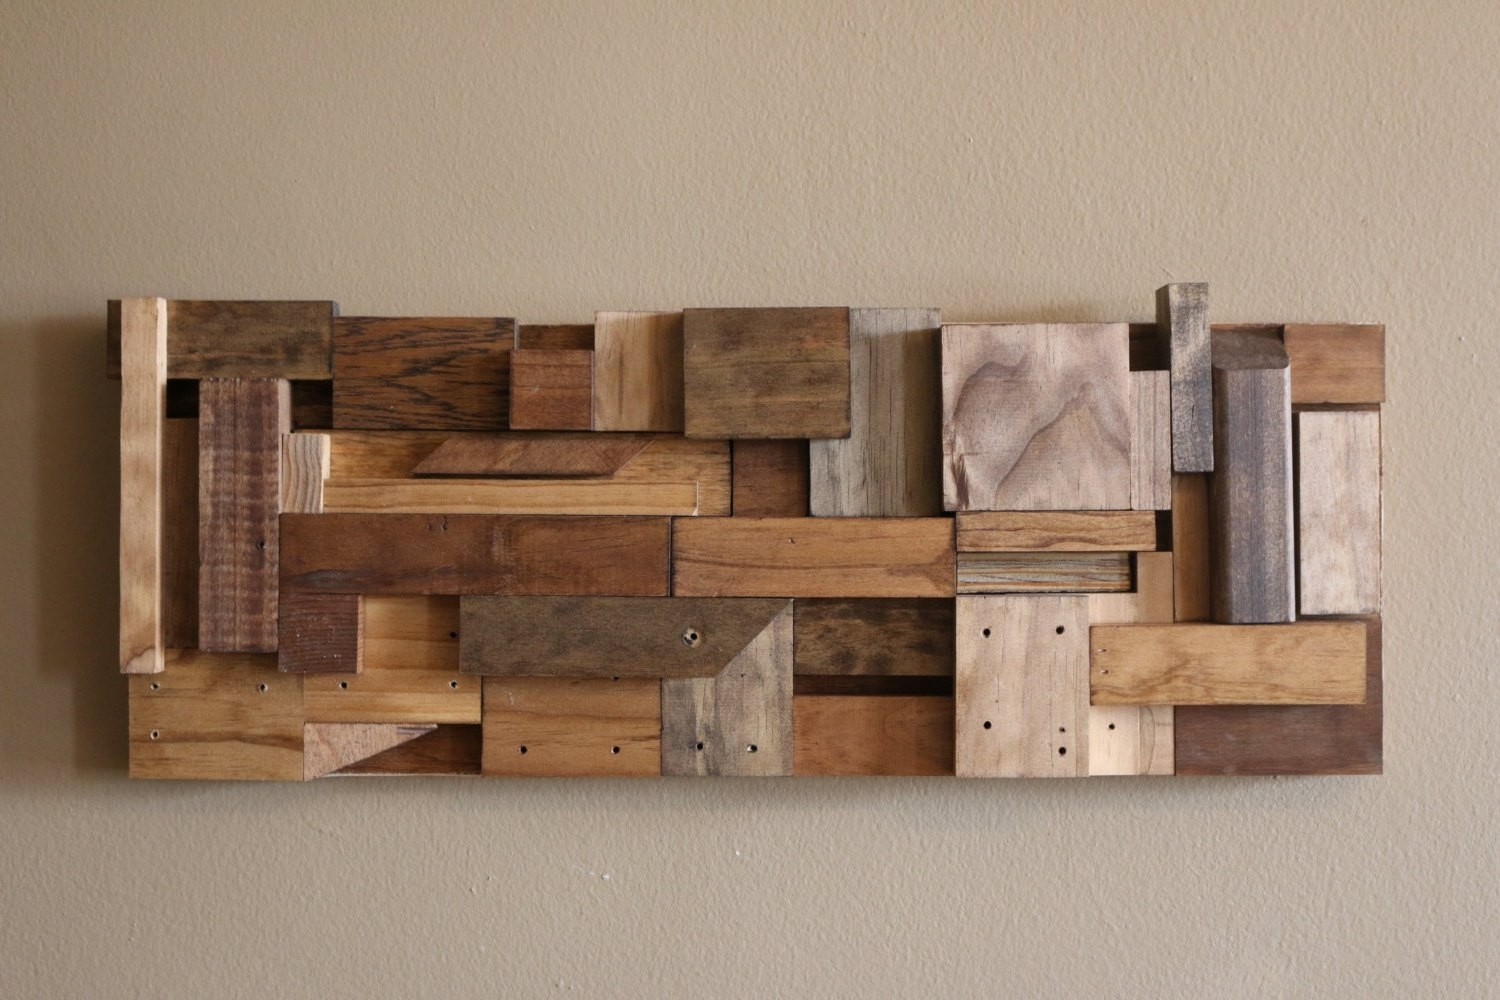 Wood Block Wall Art Interior Diy Wood Art Diy Scrap Wood Wall Art Within Most Popular Wood Wall Art Diy (View 11 of 15)